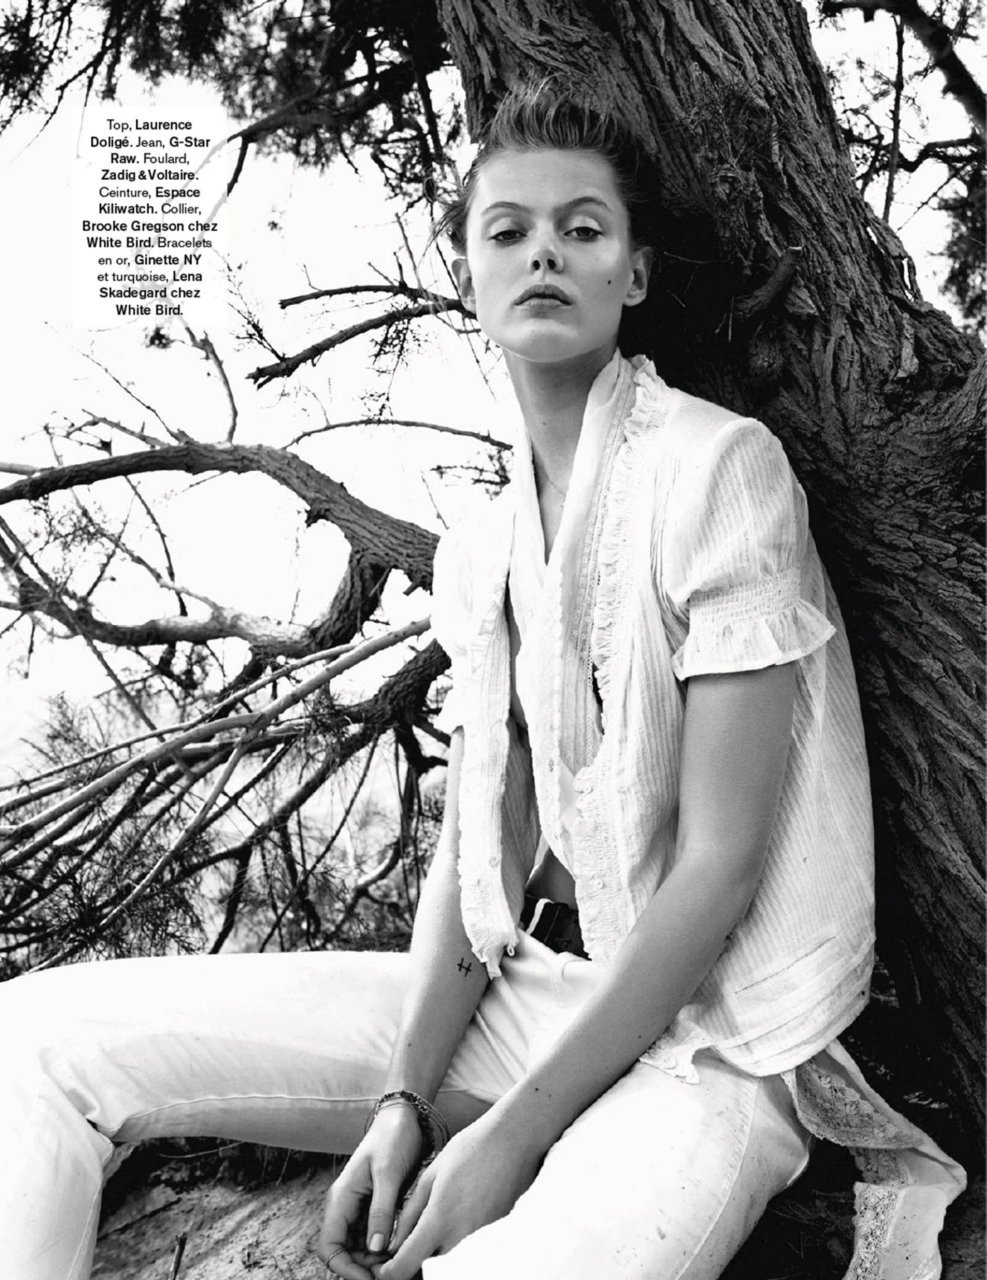 Frida Gustavsson Topless 08 TheFappening.nu